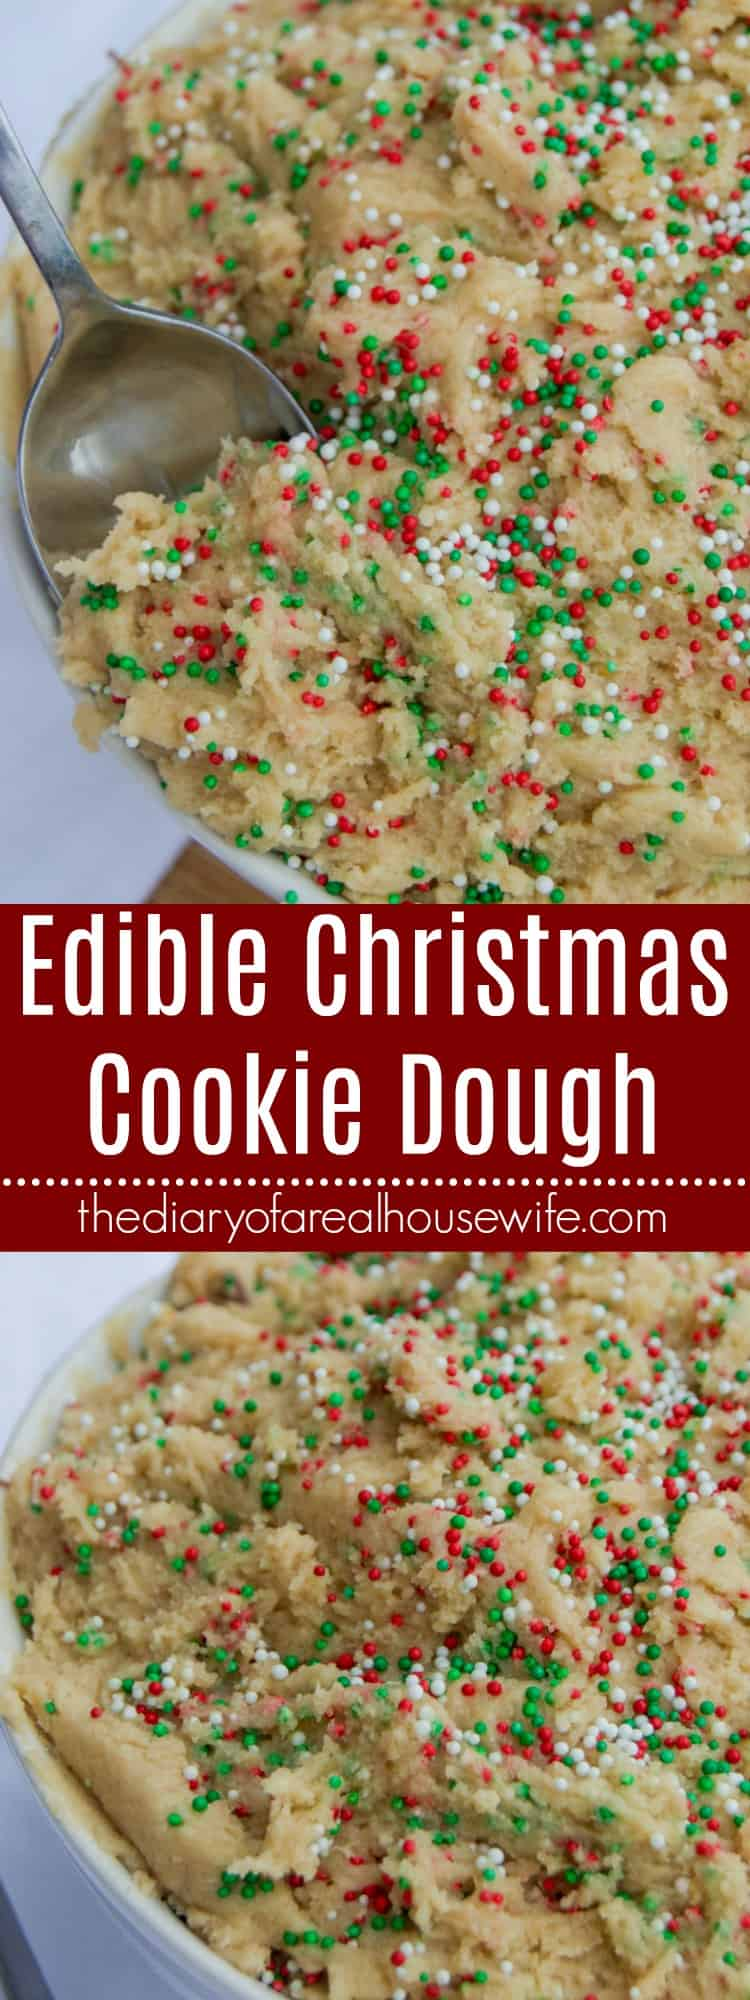 Edible Christmas Cookie Dough